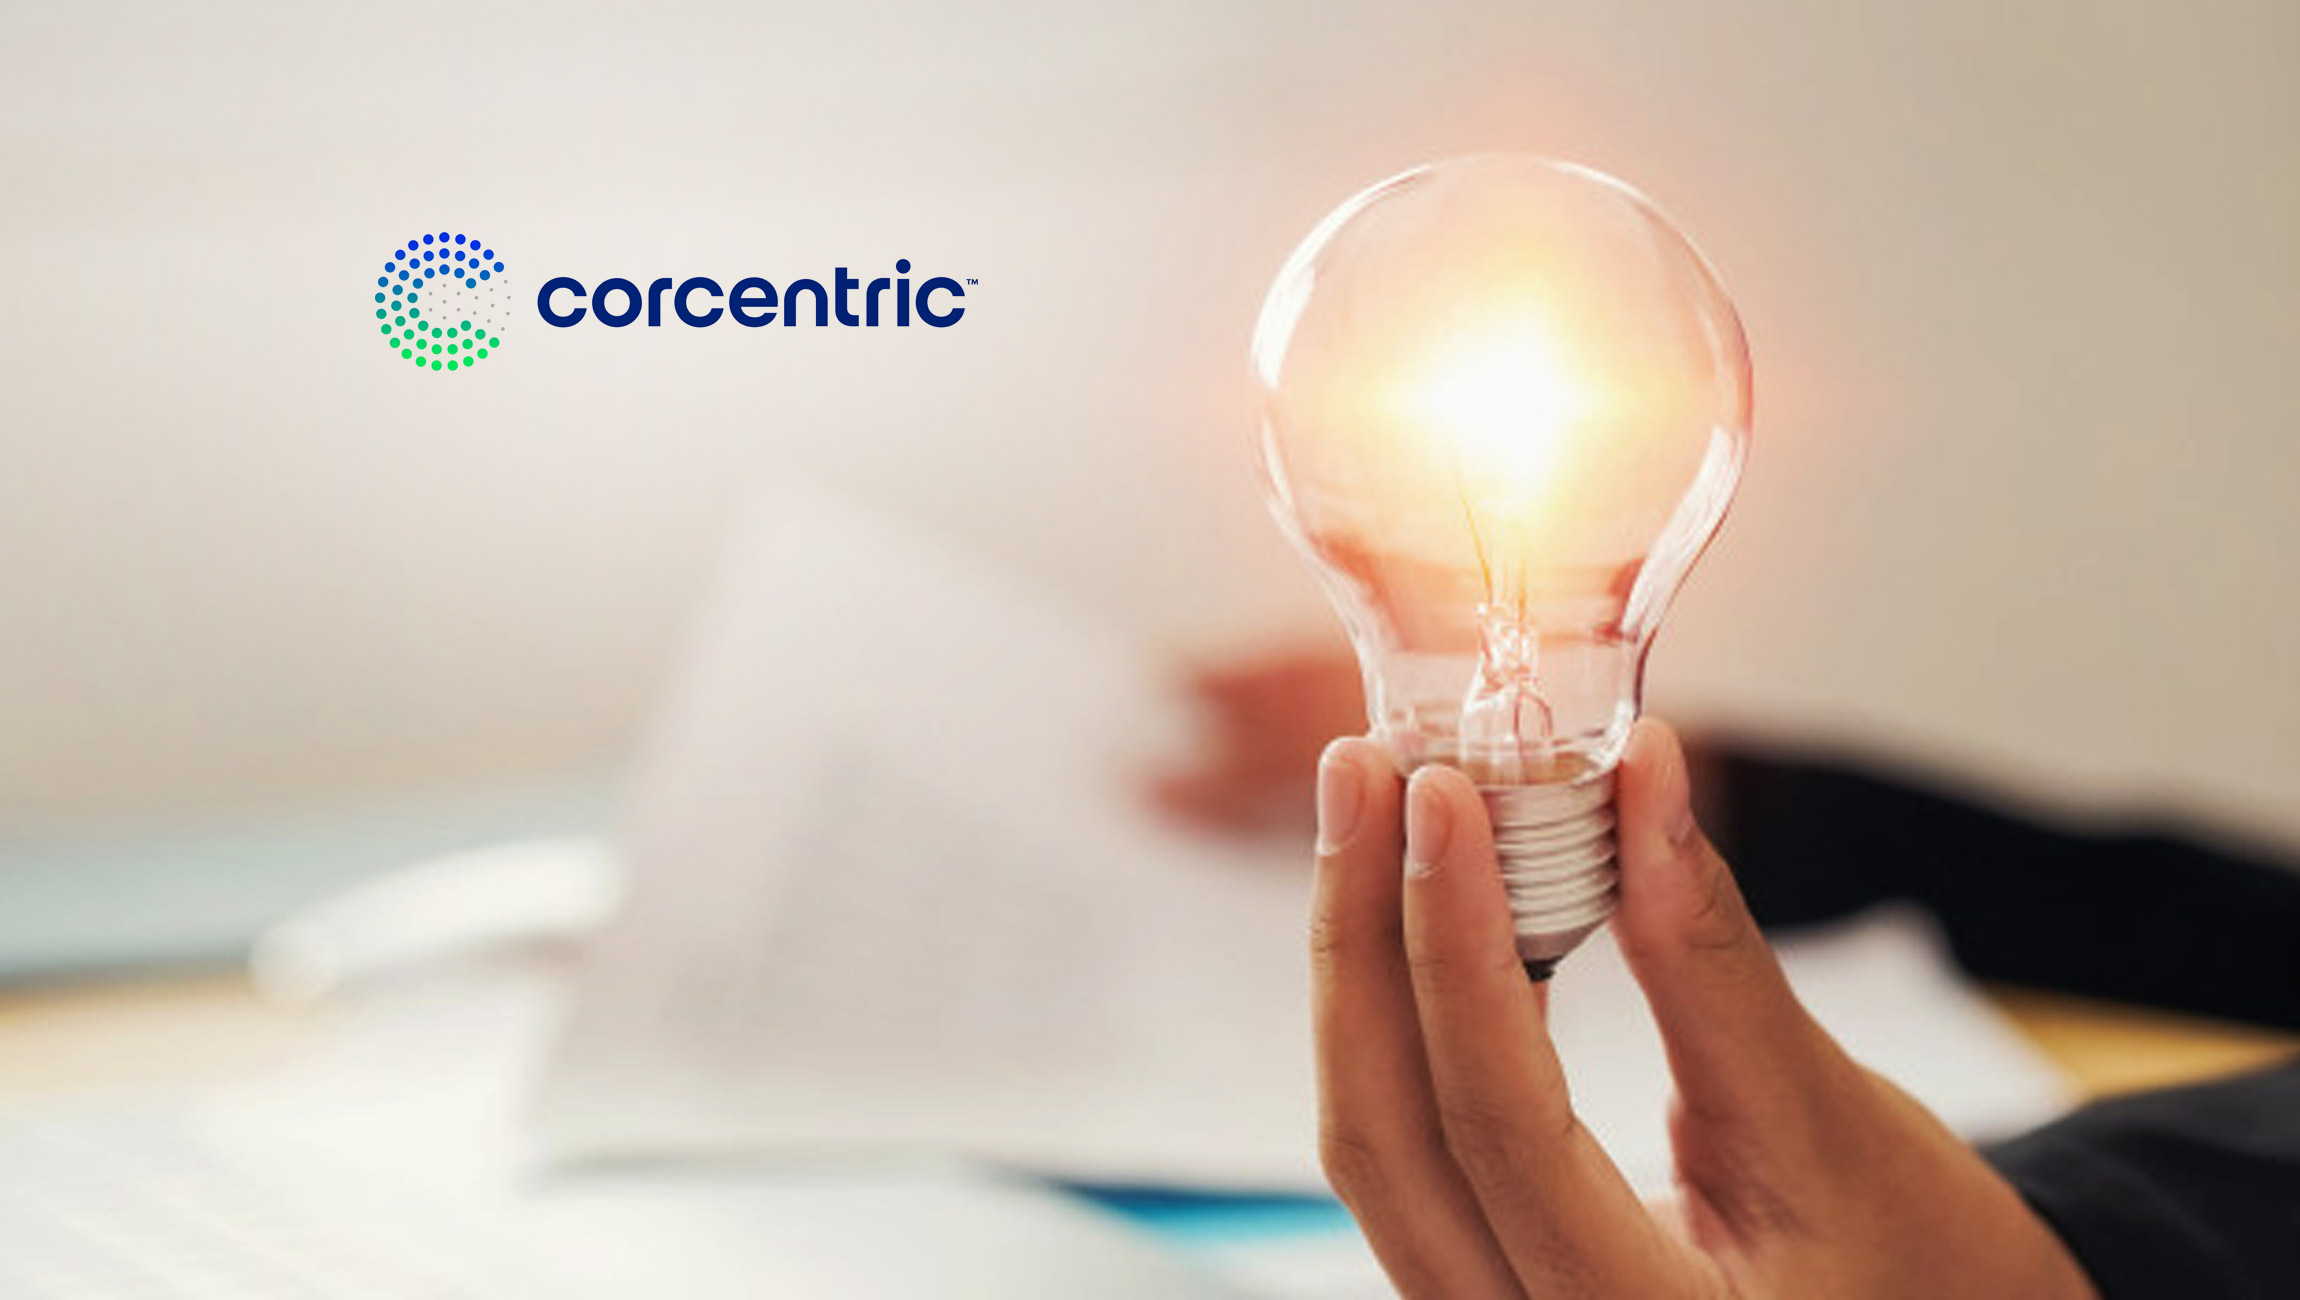 Corcentric Recognized as Leader in Strategic Procurement Solutions